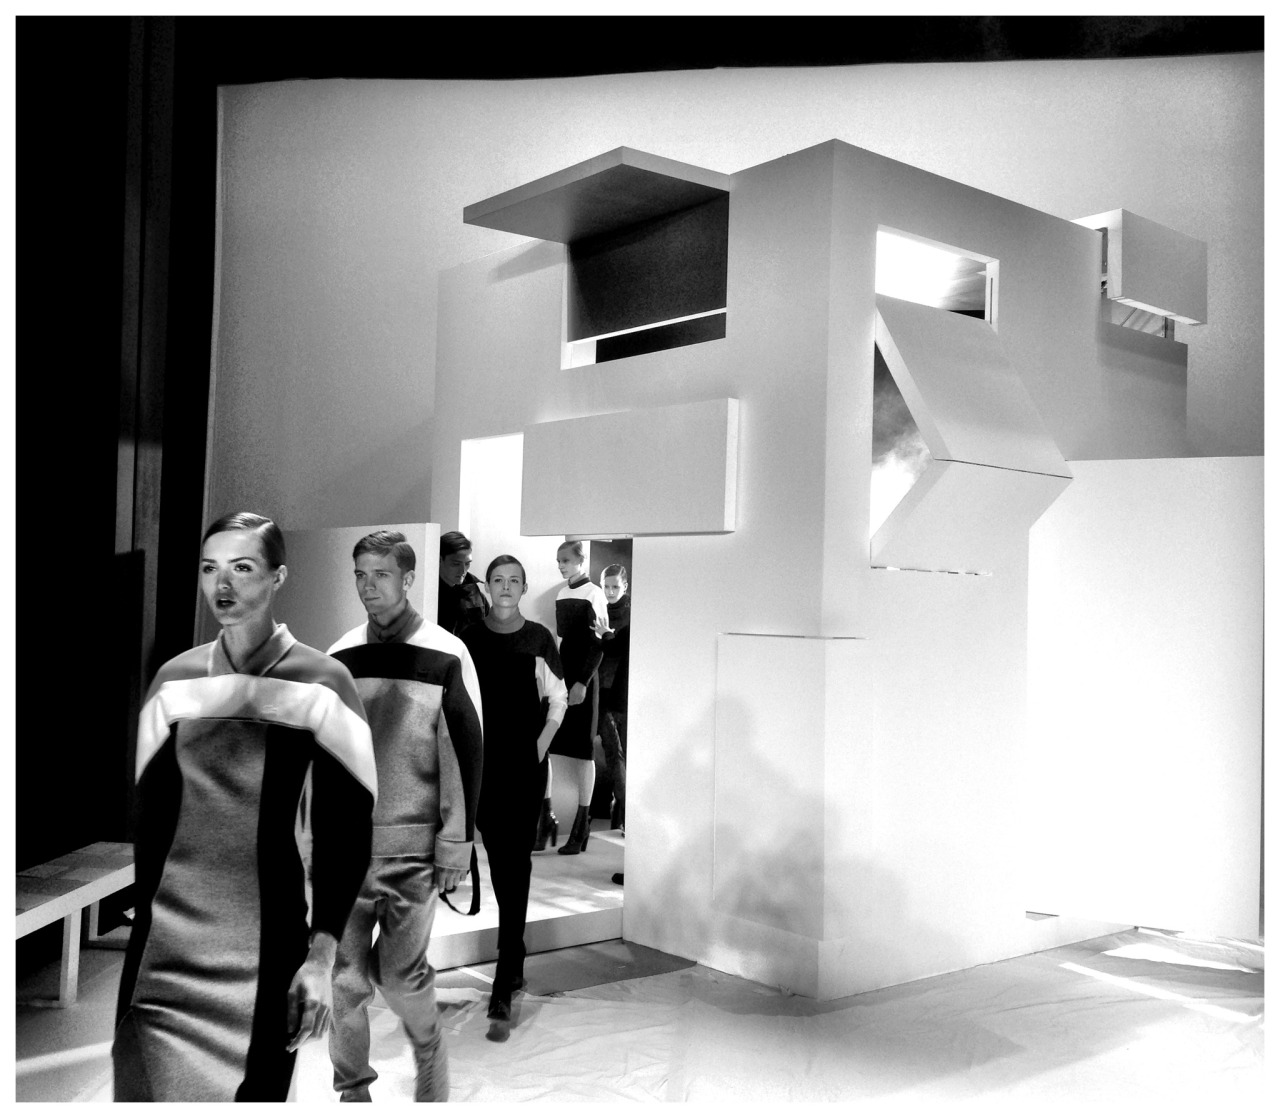 bureaubetak:  Lacoste RTW FW13  Lincoln Center  Saturday February 9th 2013  Produced and designed by Bureau Betak  Photos by Alexandre de Betak